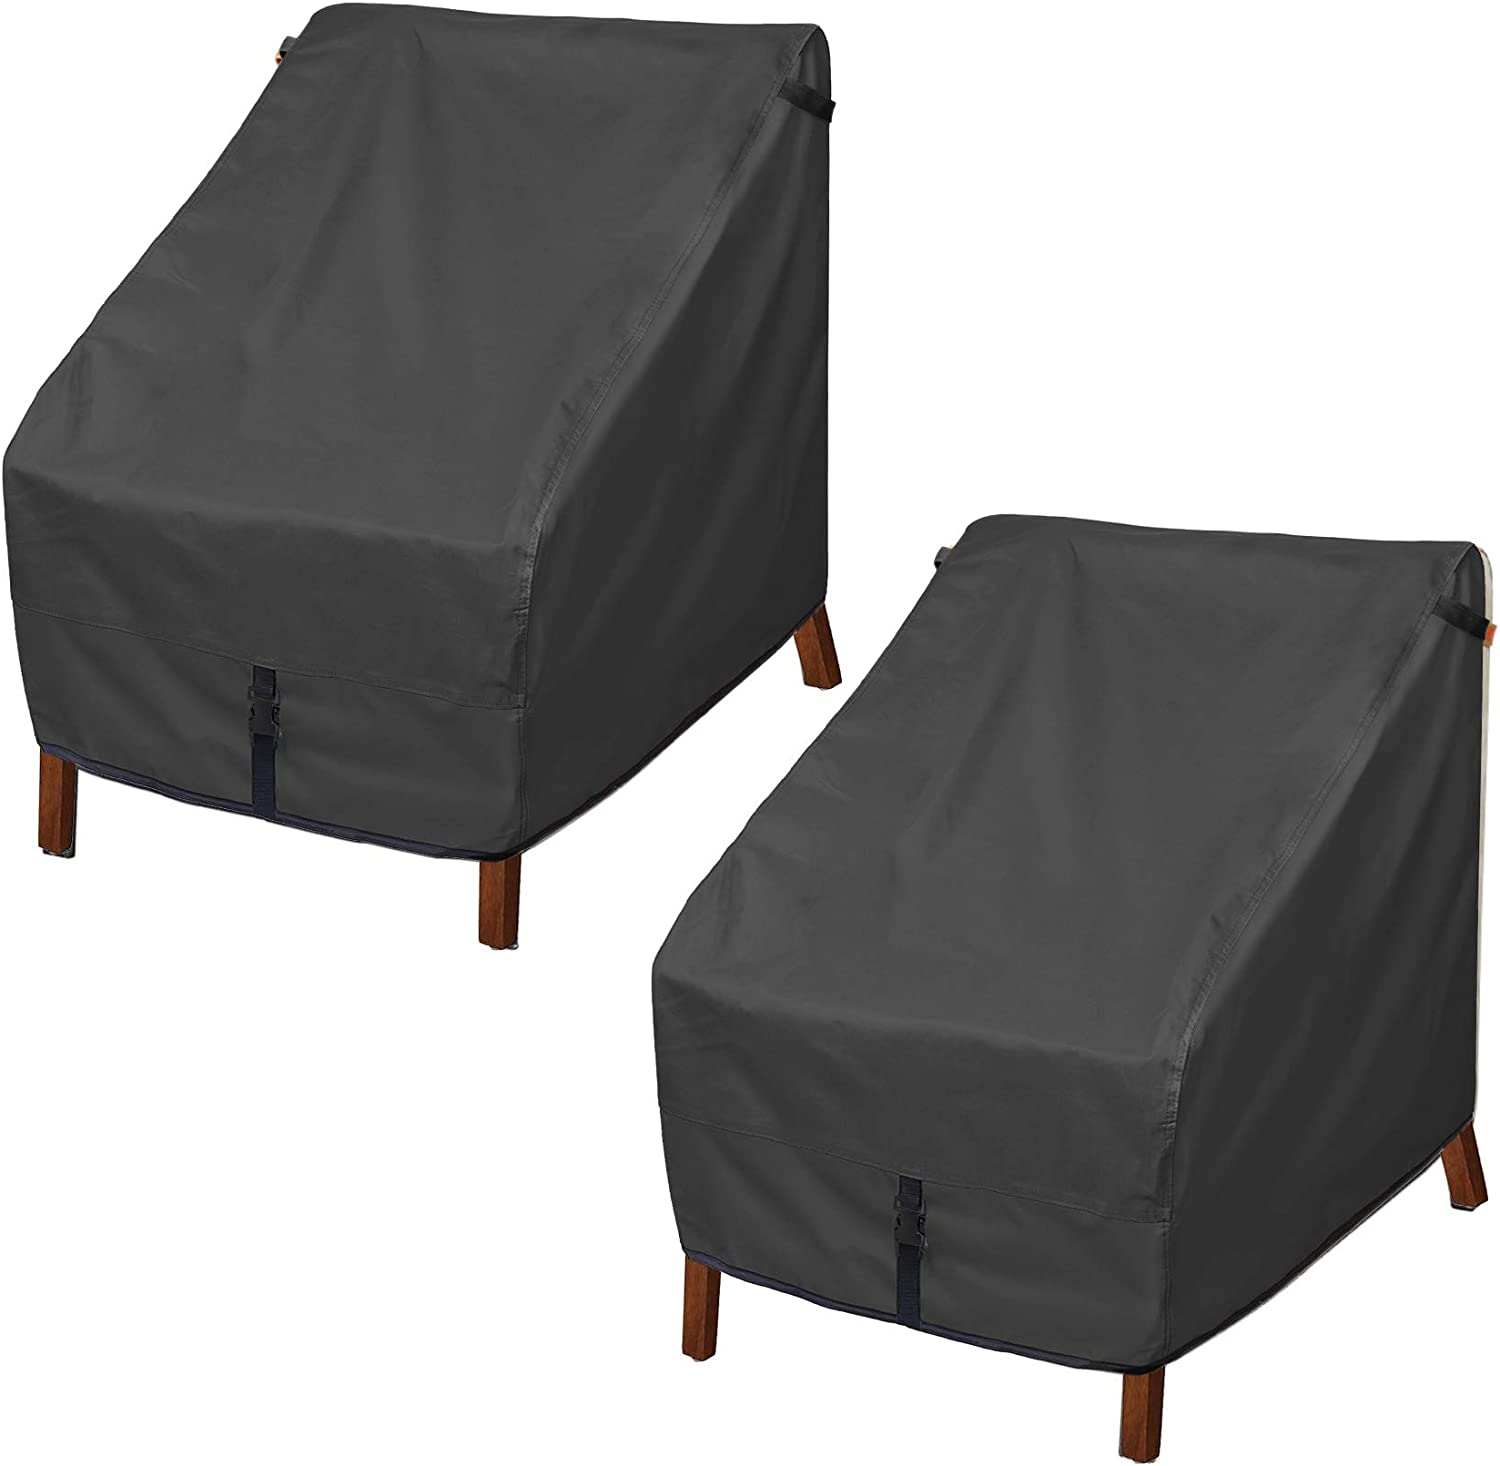 Porch Shield Patio Chair Covers - Waterproof Outdoor Single Armchair High Back Adirondack Chair Cover 2 Pack - 30W x 33D x 34H inch, Black